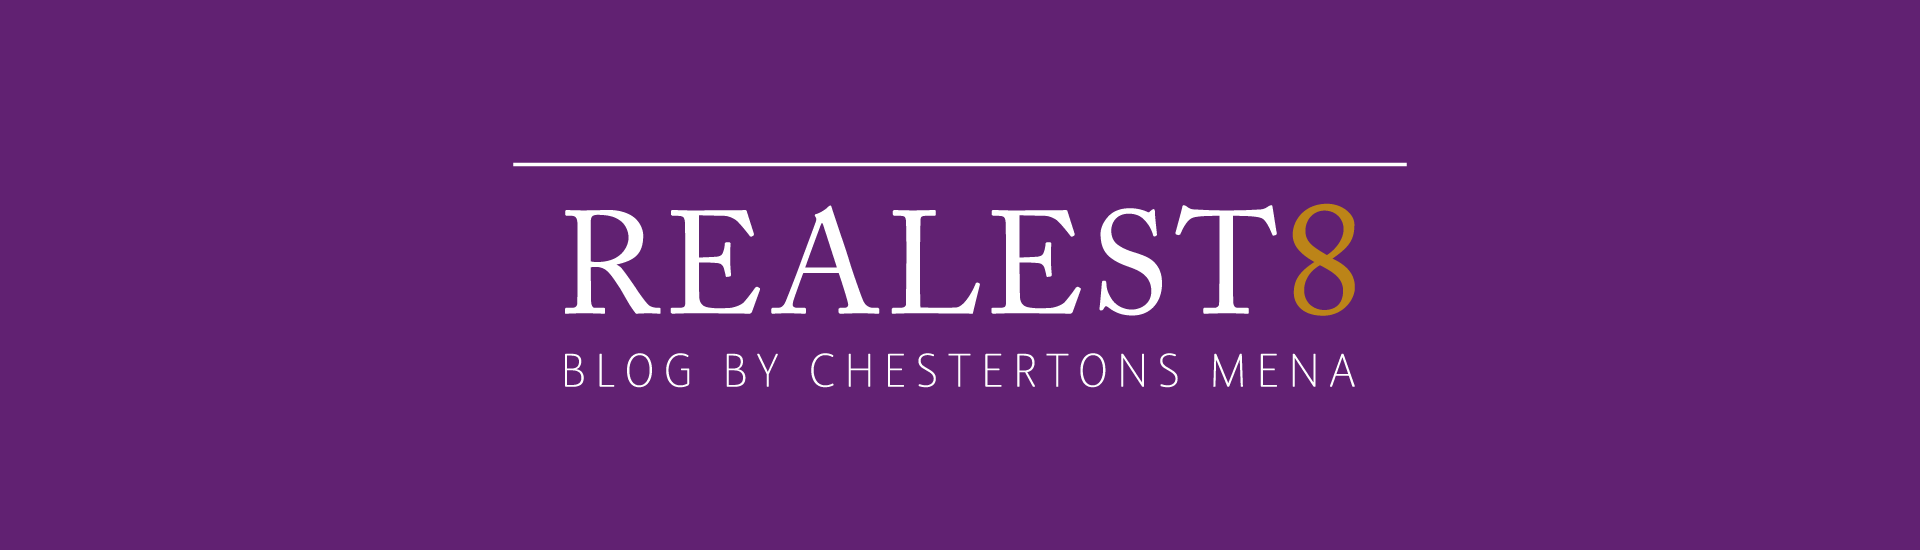 REALEST8 Blog by Chestertons MENA - Banner Drafts-01.png